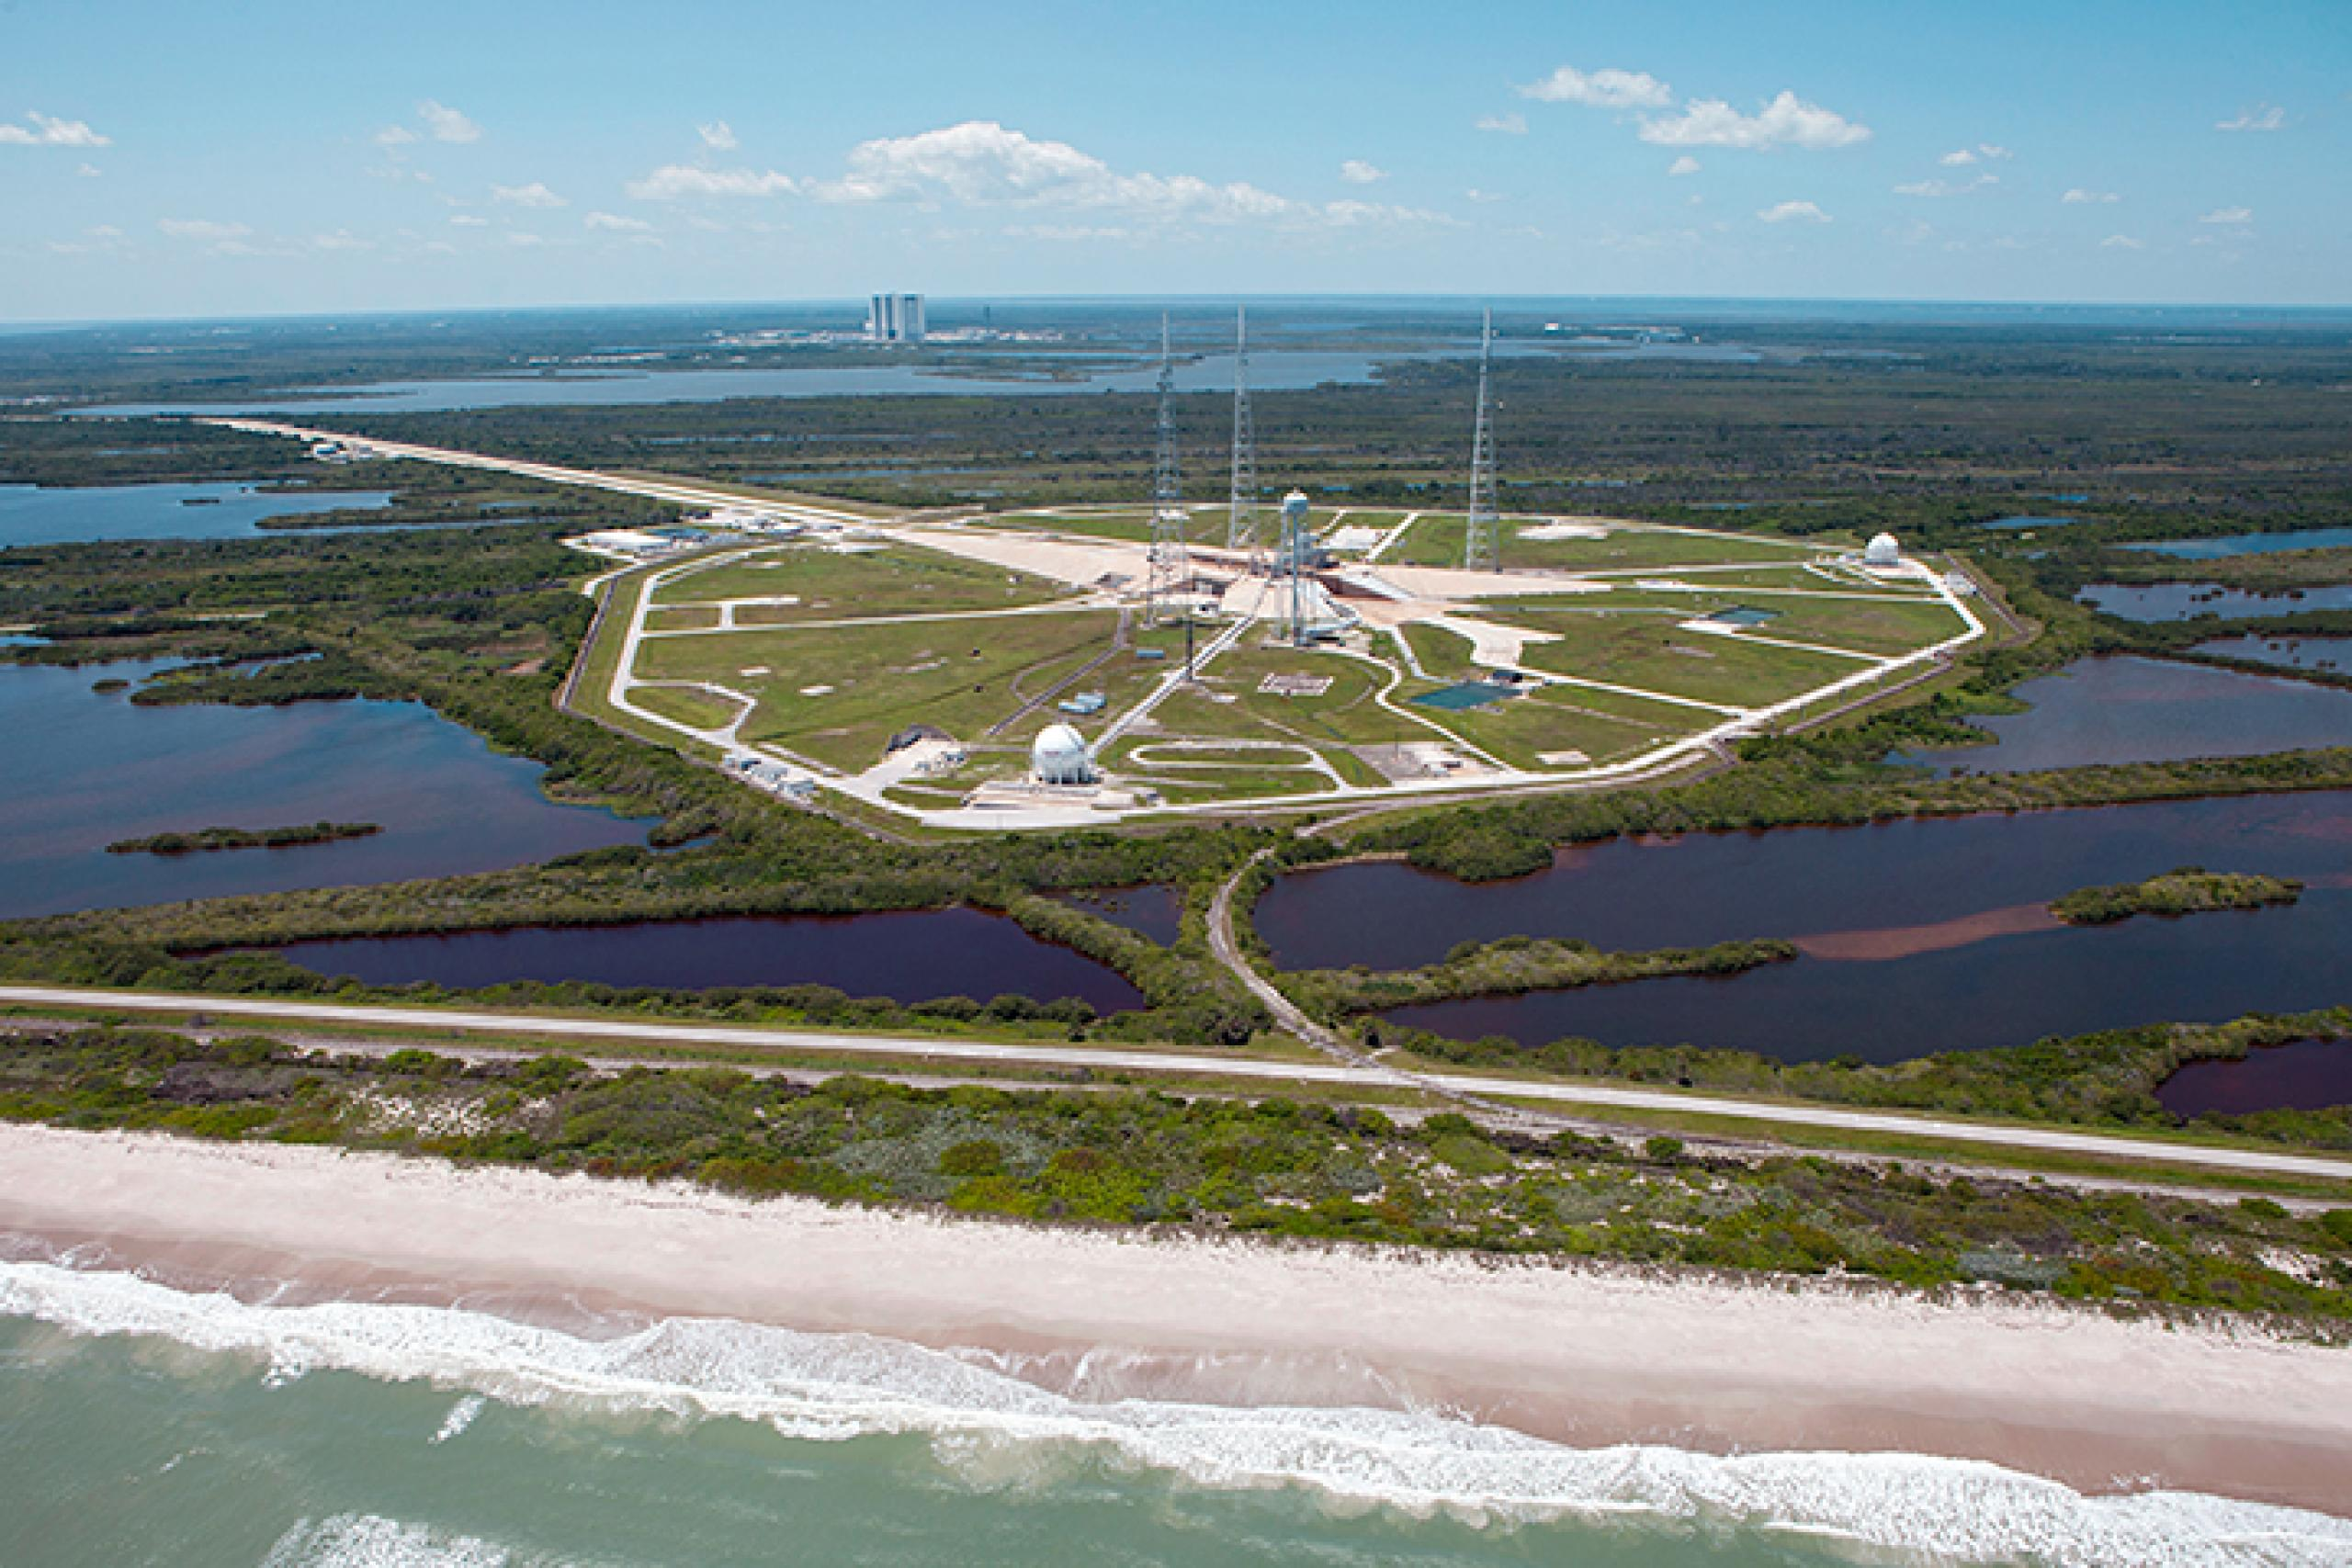 Photo of launch pad surrounded by a body of water